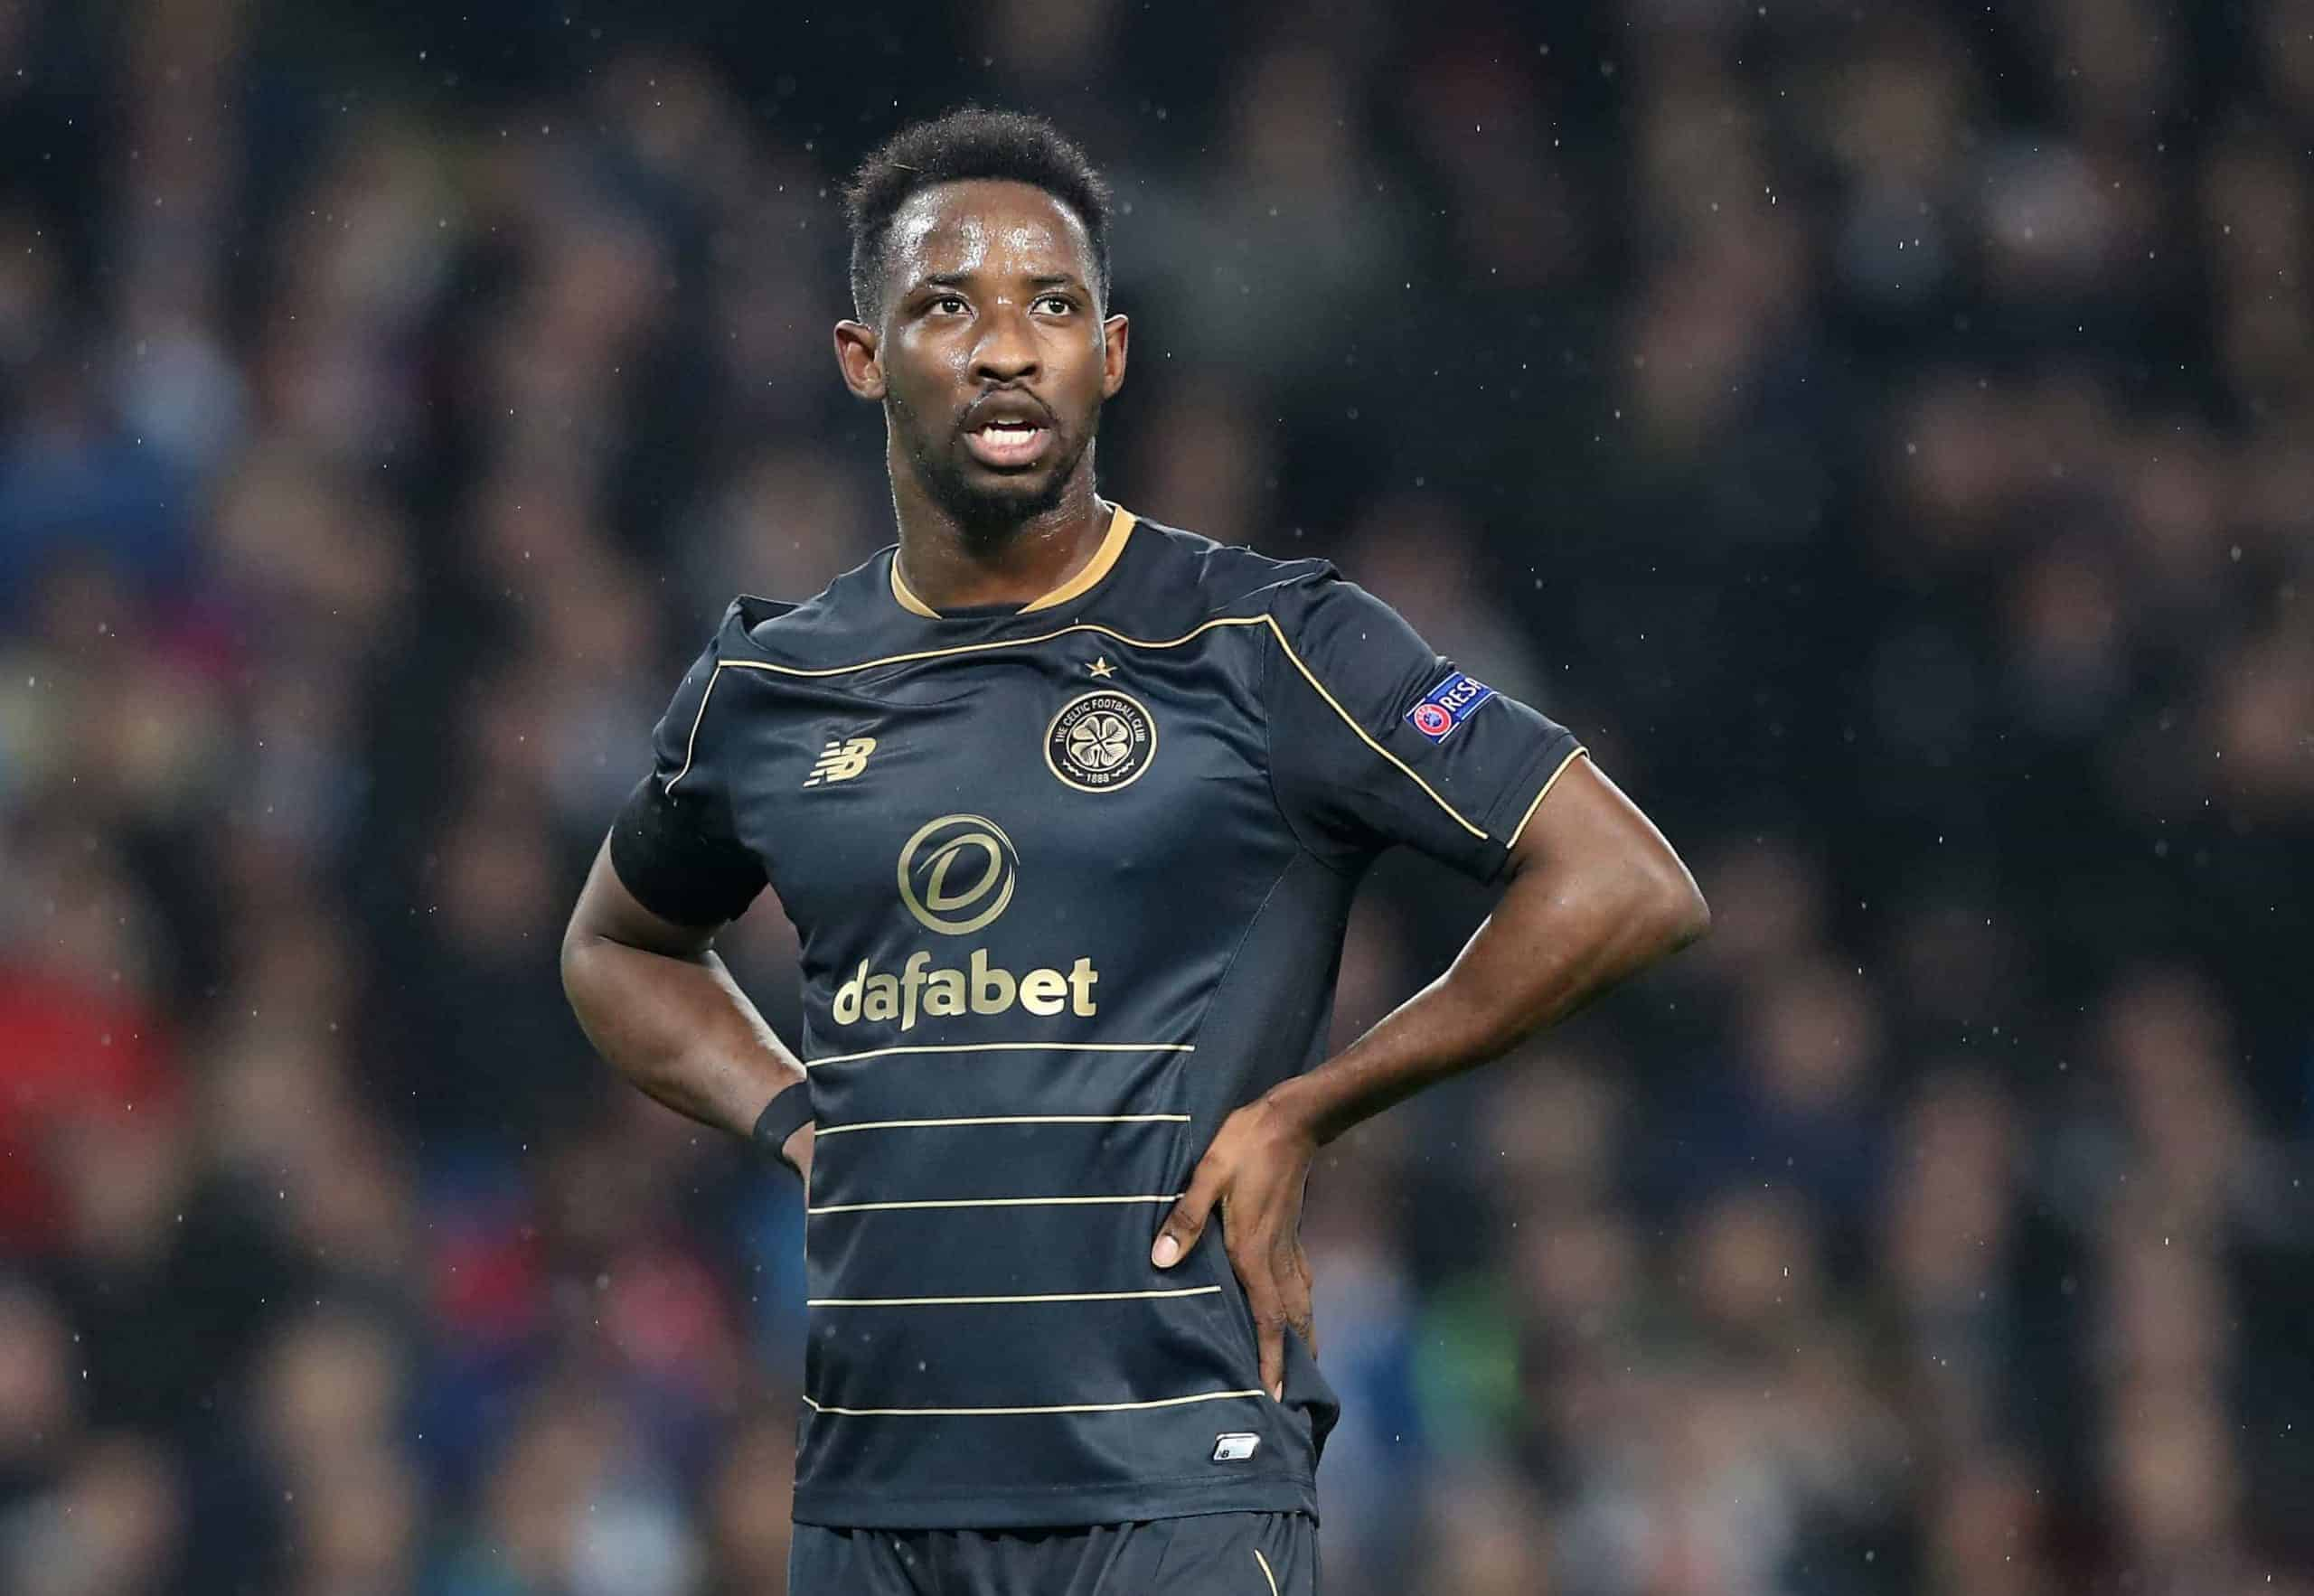 Celtic's Moussa Dembele during the UEFA Champions League, Group C match at the Etihad Stadium, Manchester. PRESS ASSOCIATION Photo. Picture date: Tuesday December 6, 2016. Photo: Martin Rickett/PA Wire